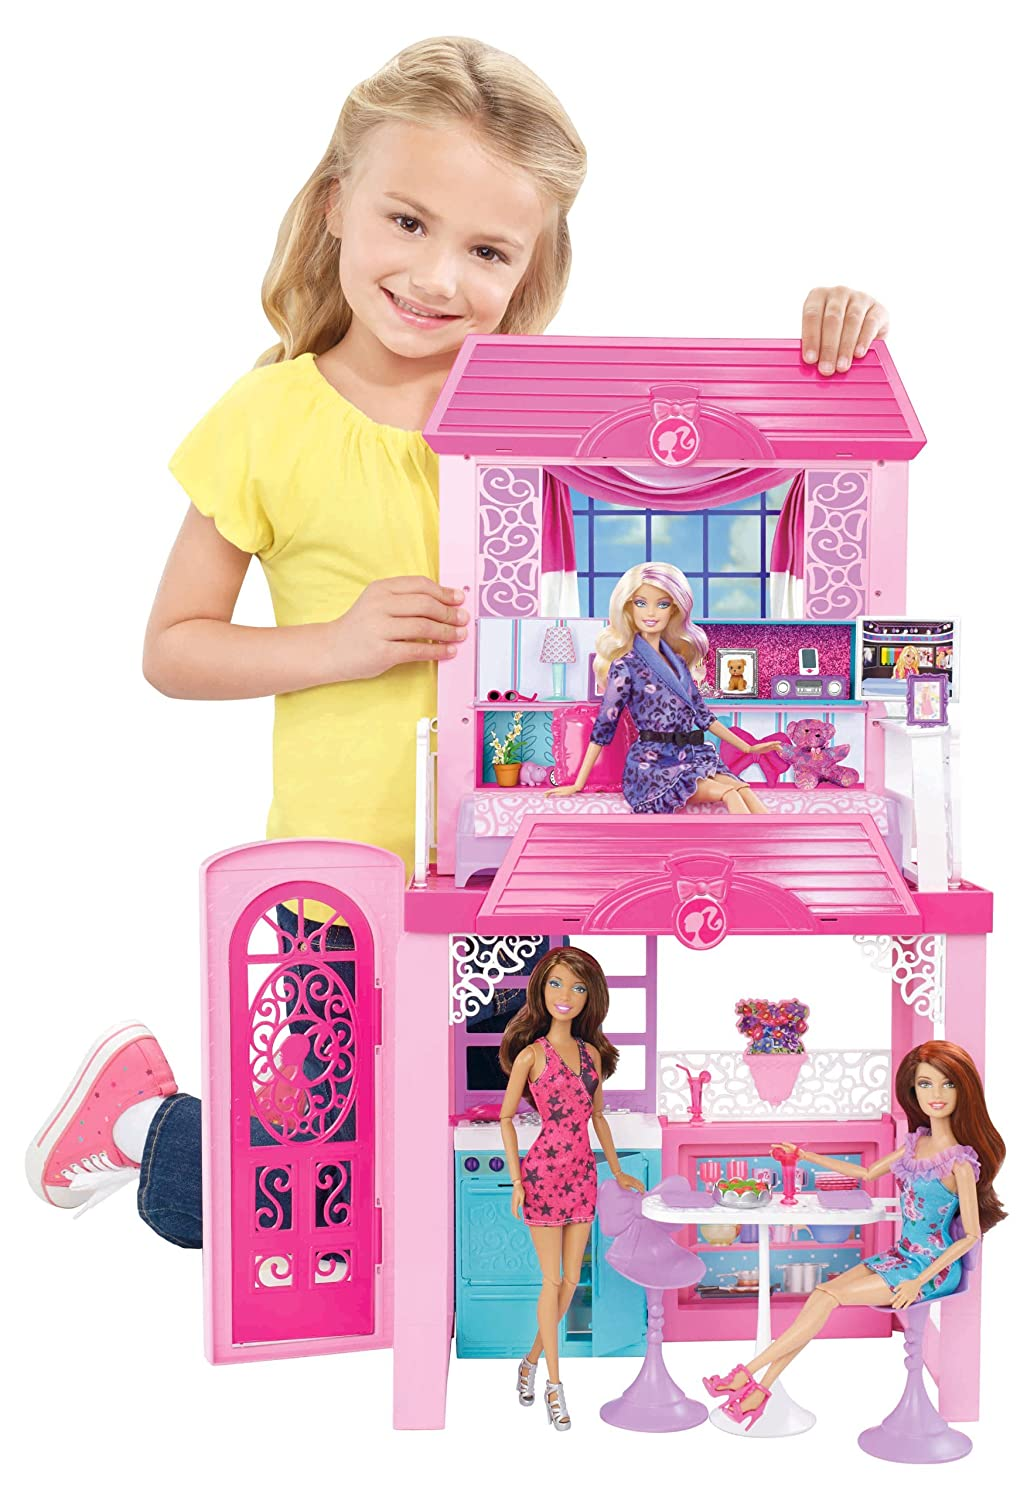 barbie glam vacation house barbie doll house new ebay. Black Bedroom Furniture Sets. Home Design Ideas